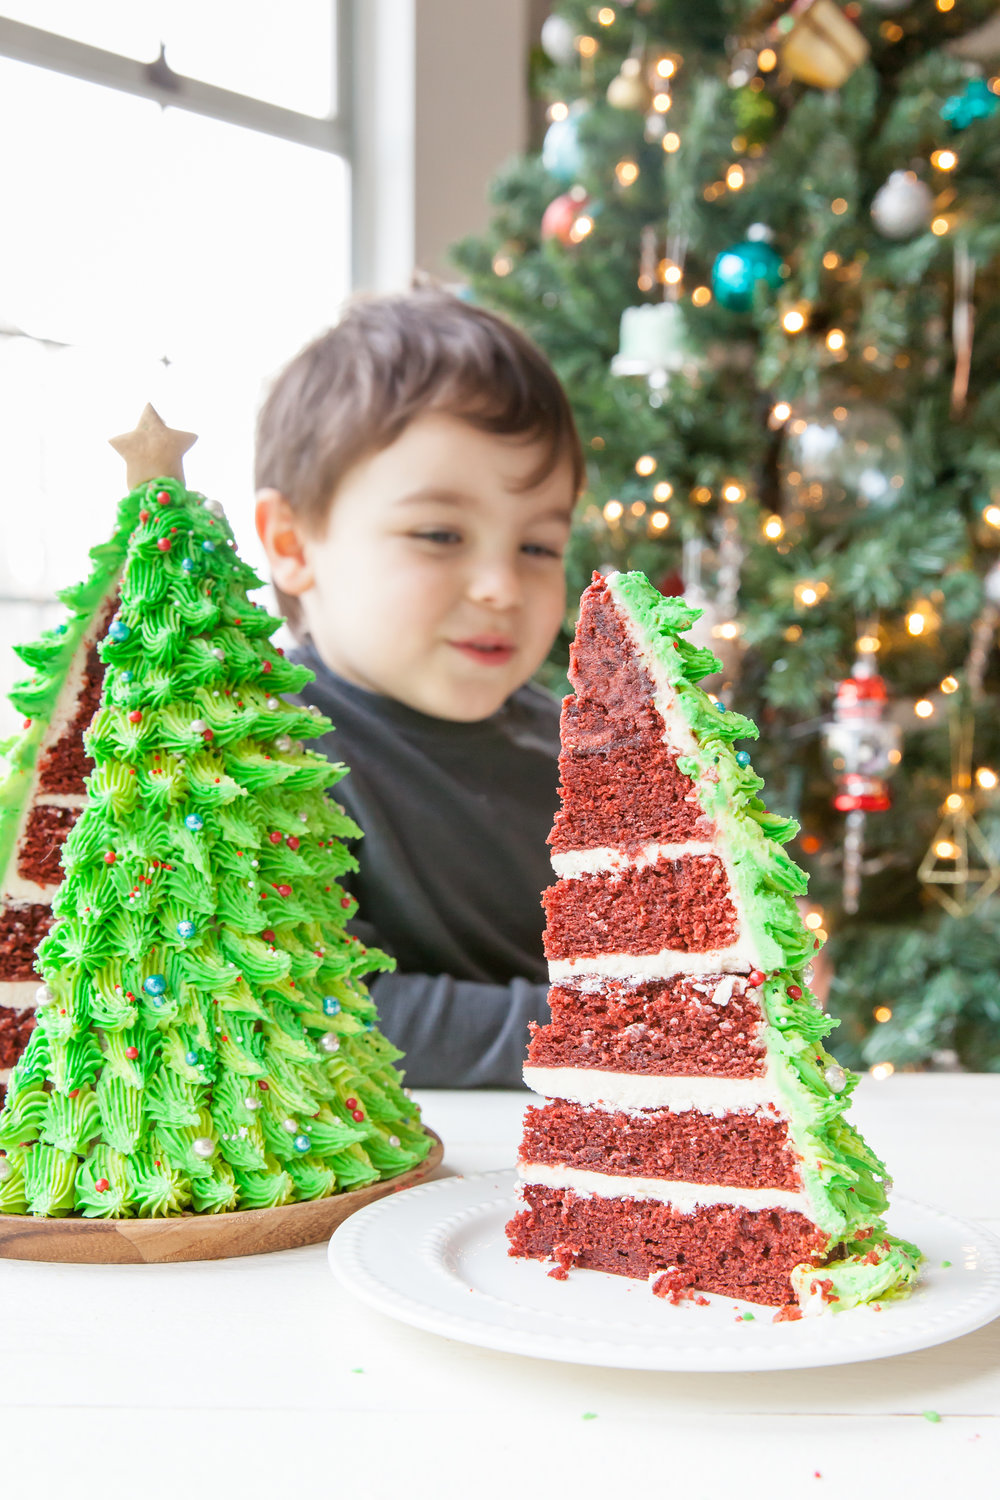 Red Velvet Christmas Tree Cake